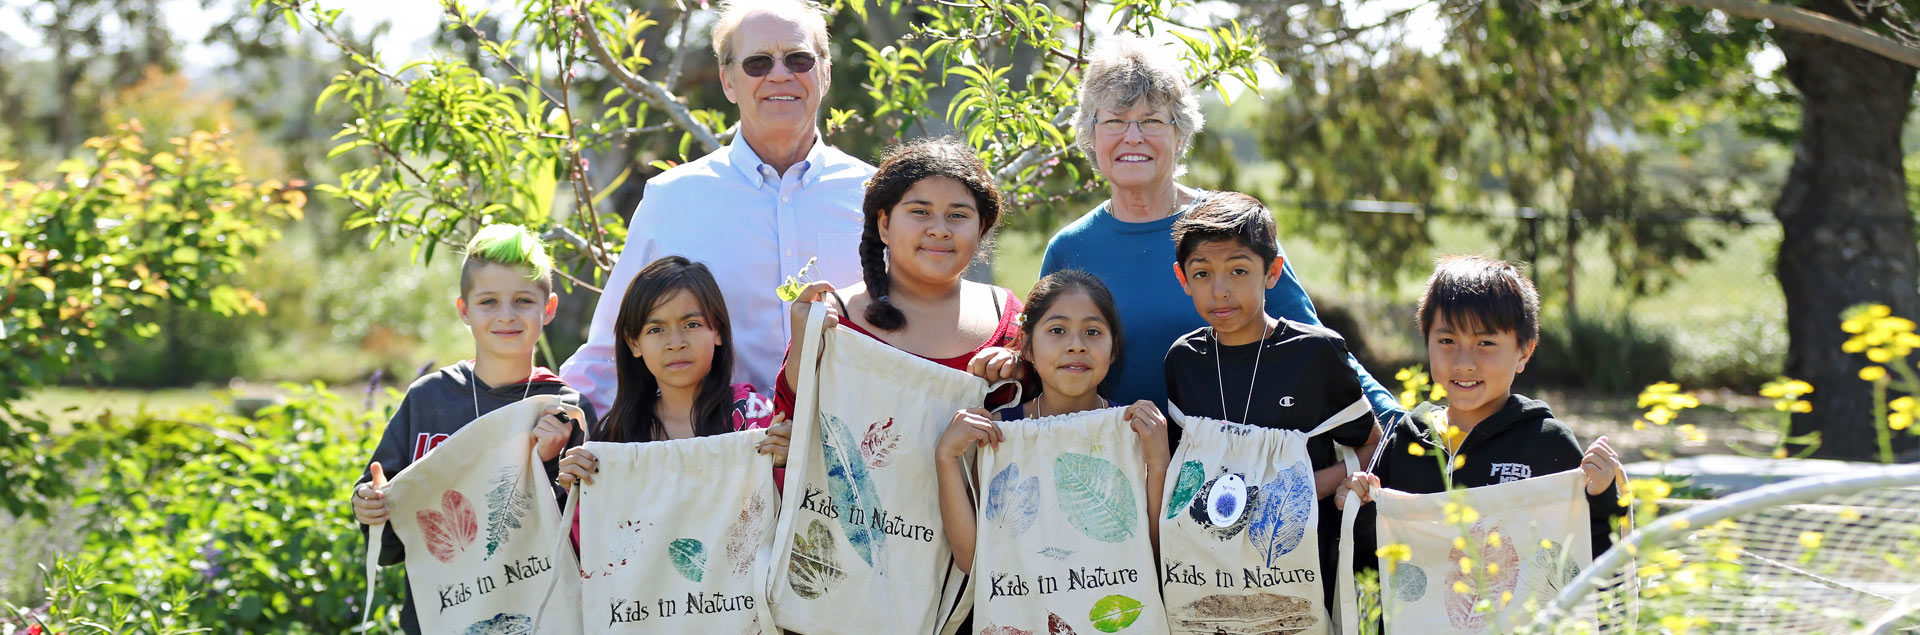 Kids In Nature (KIN), teaching environmental science